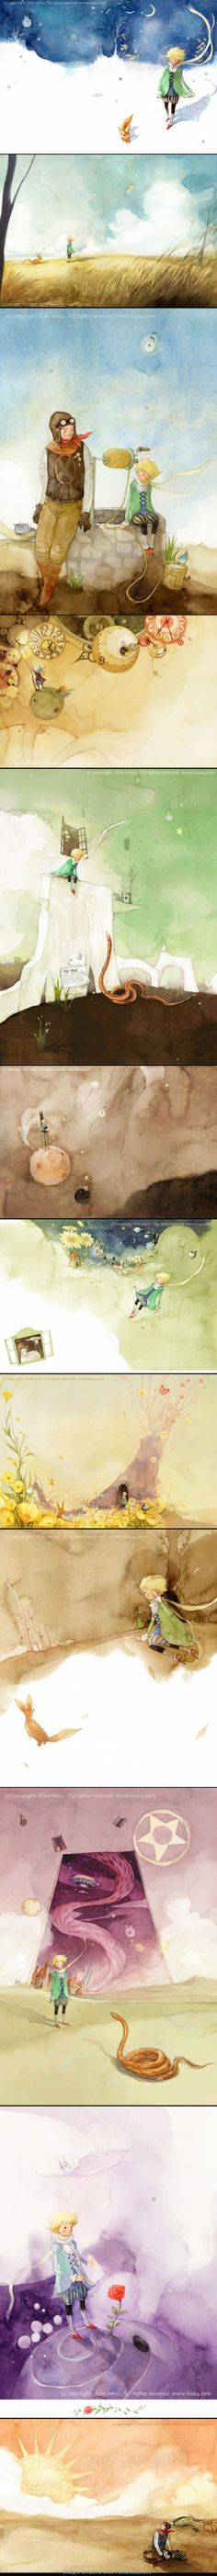 Kim Min Ji's enchanting illustrations of Antoine de Saint-Exupéry's The Little Prince